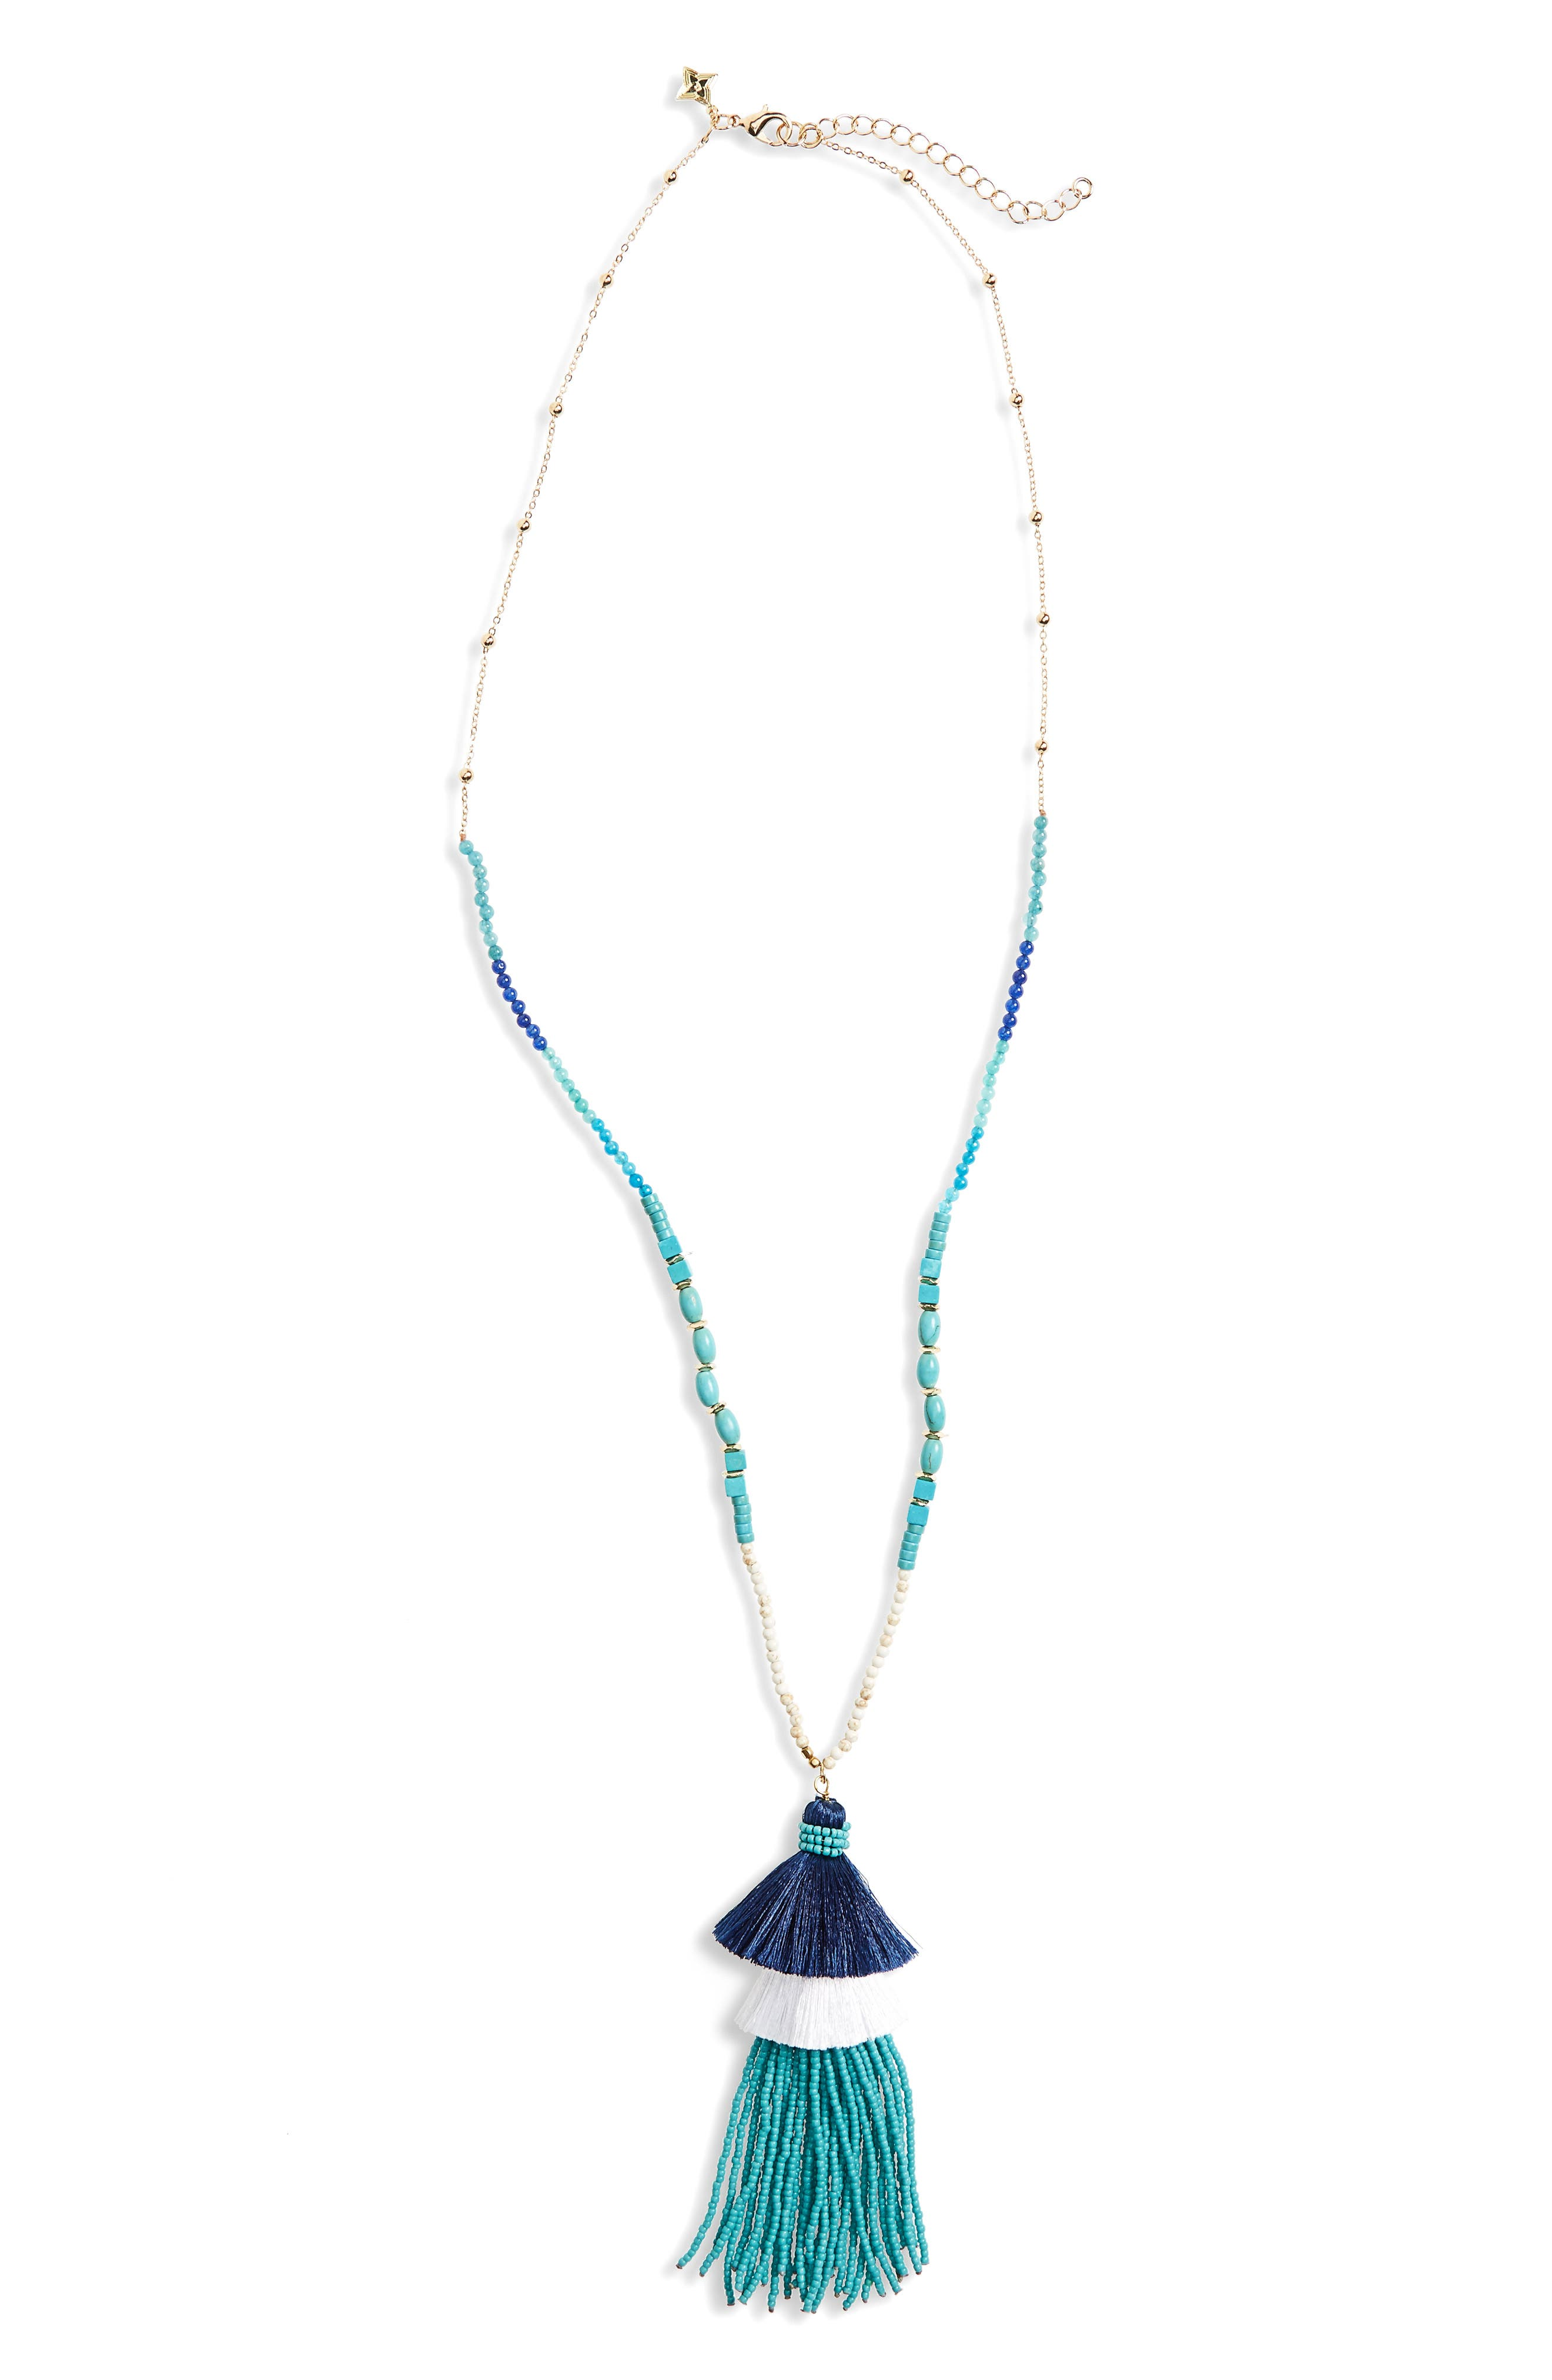 Stacked Tassel Pendant Necklace,                             Main thumbnail 1, color,                             420